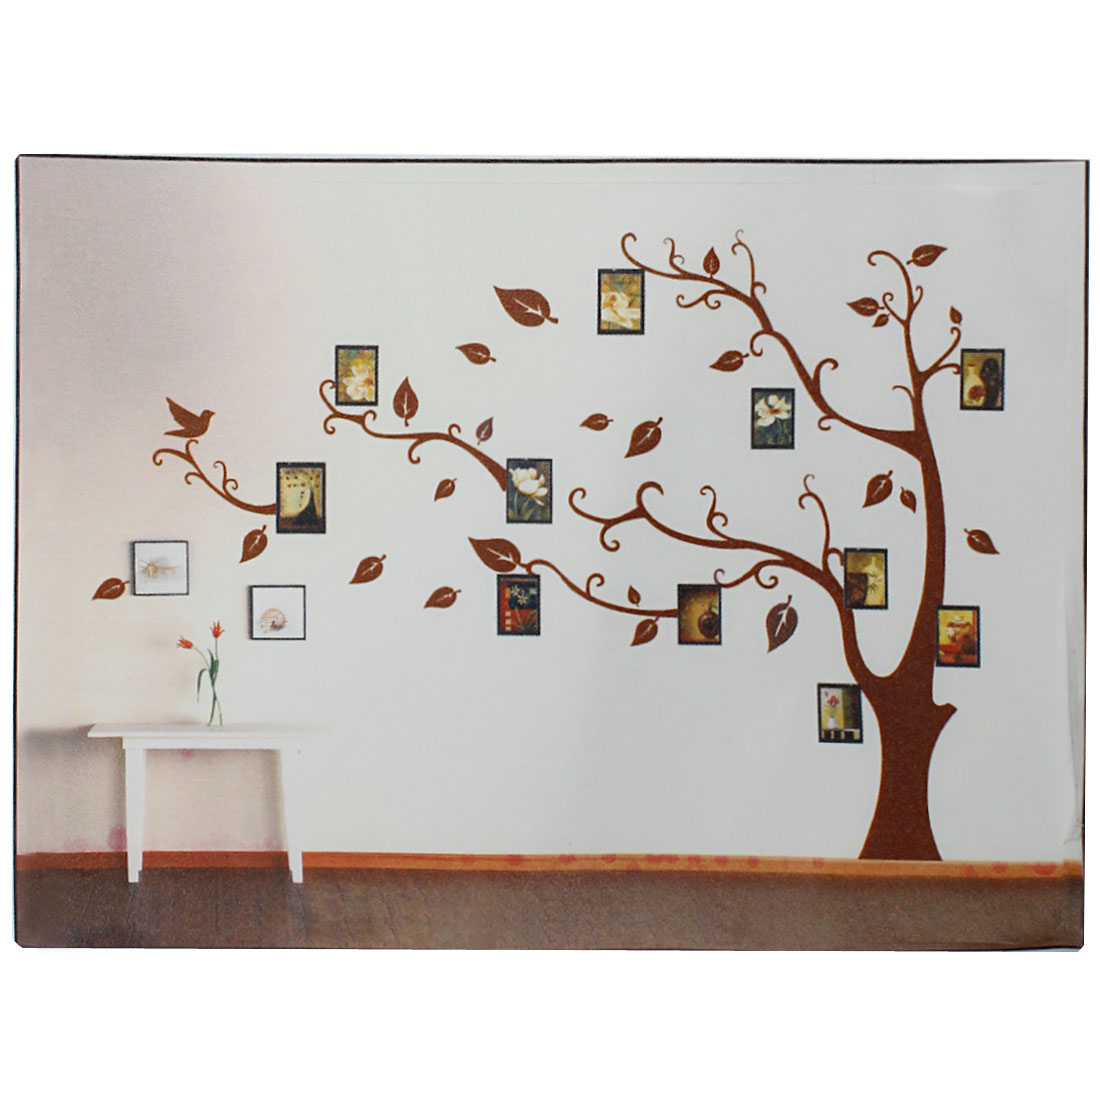 Tree Branch Trunk Wall Art Sticker Decal Home Decor Mural Coffee Color